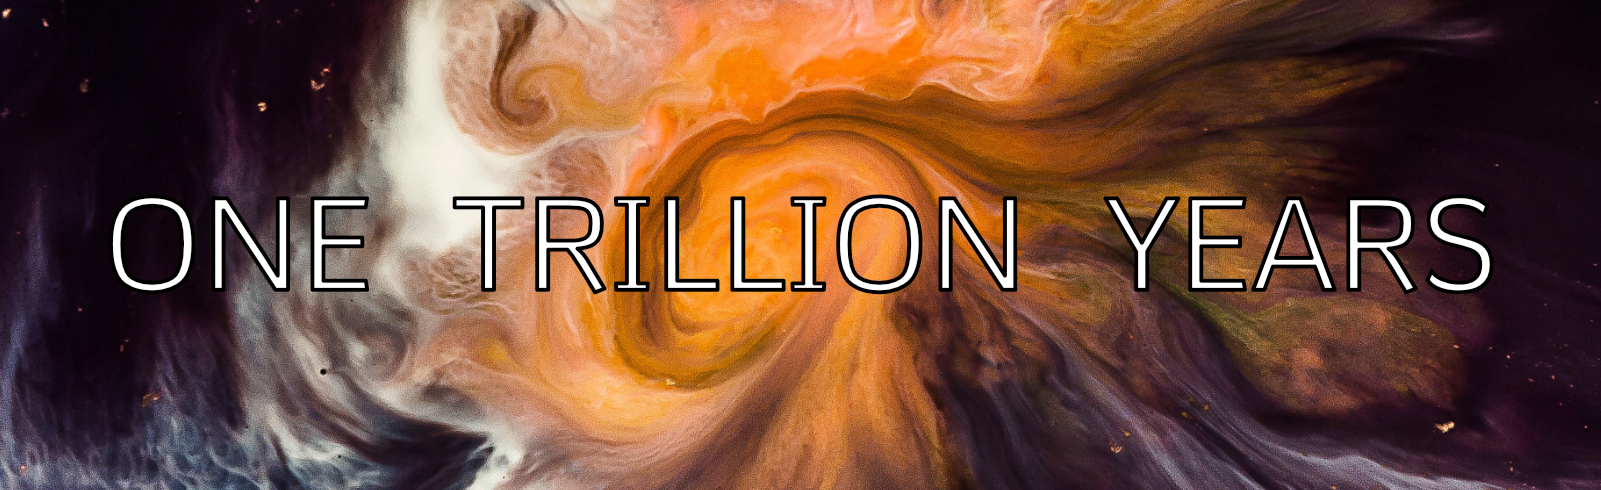 One Trillion Years